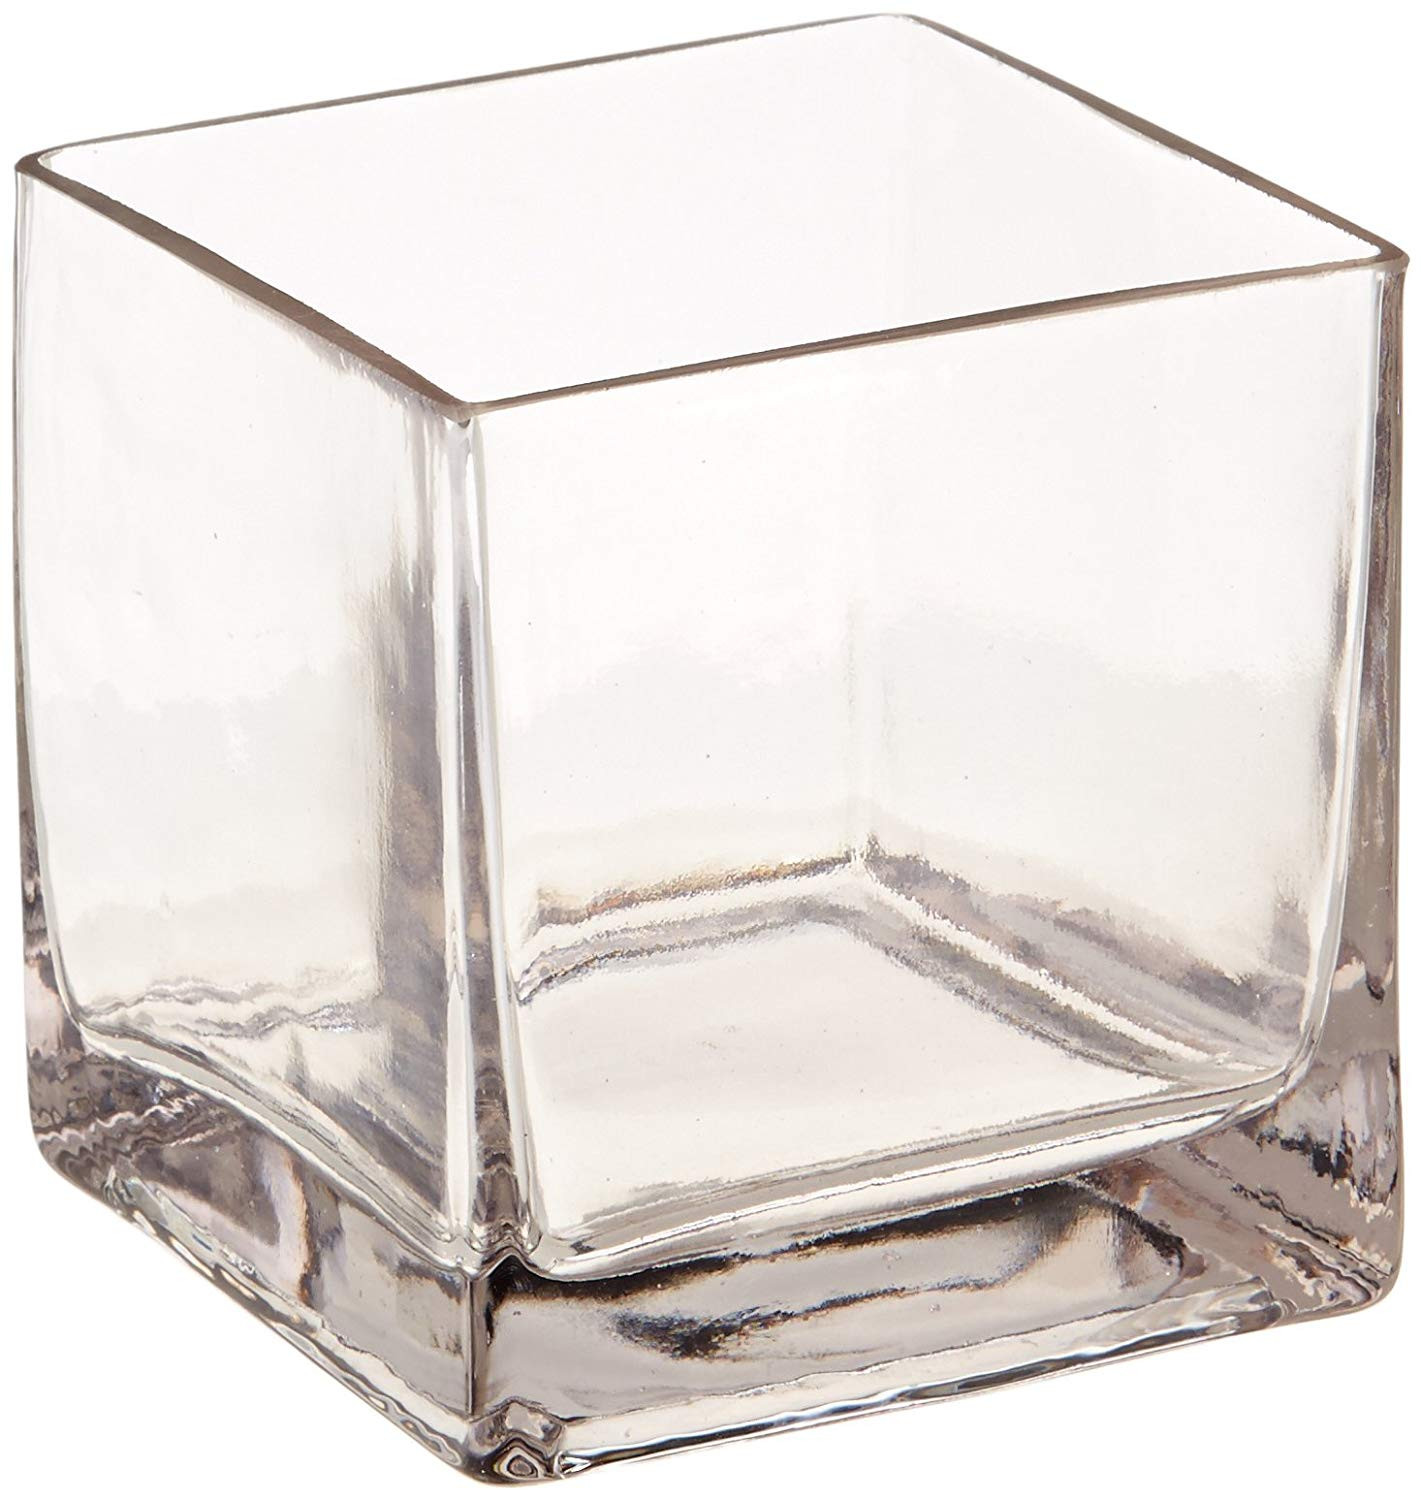 waterford balmoral 10 inch vase of amazon com 12piece 4 square crystal clear glass vase home kitchen inside 71 jezfmvnl sl1500